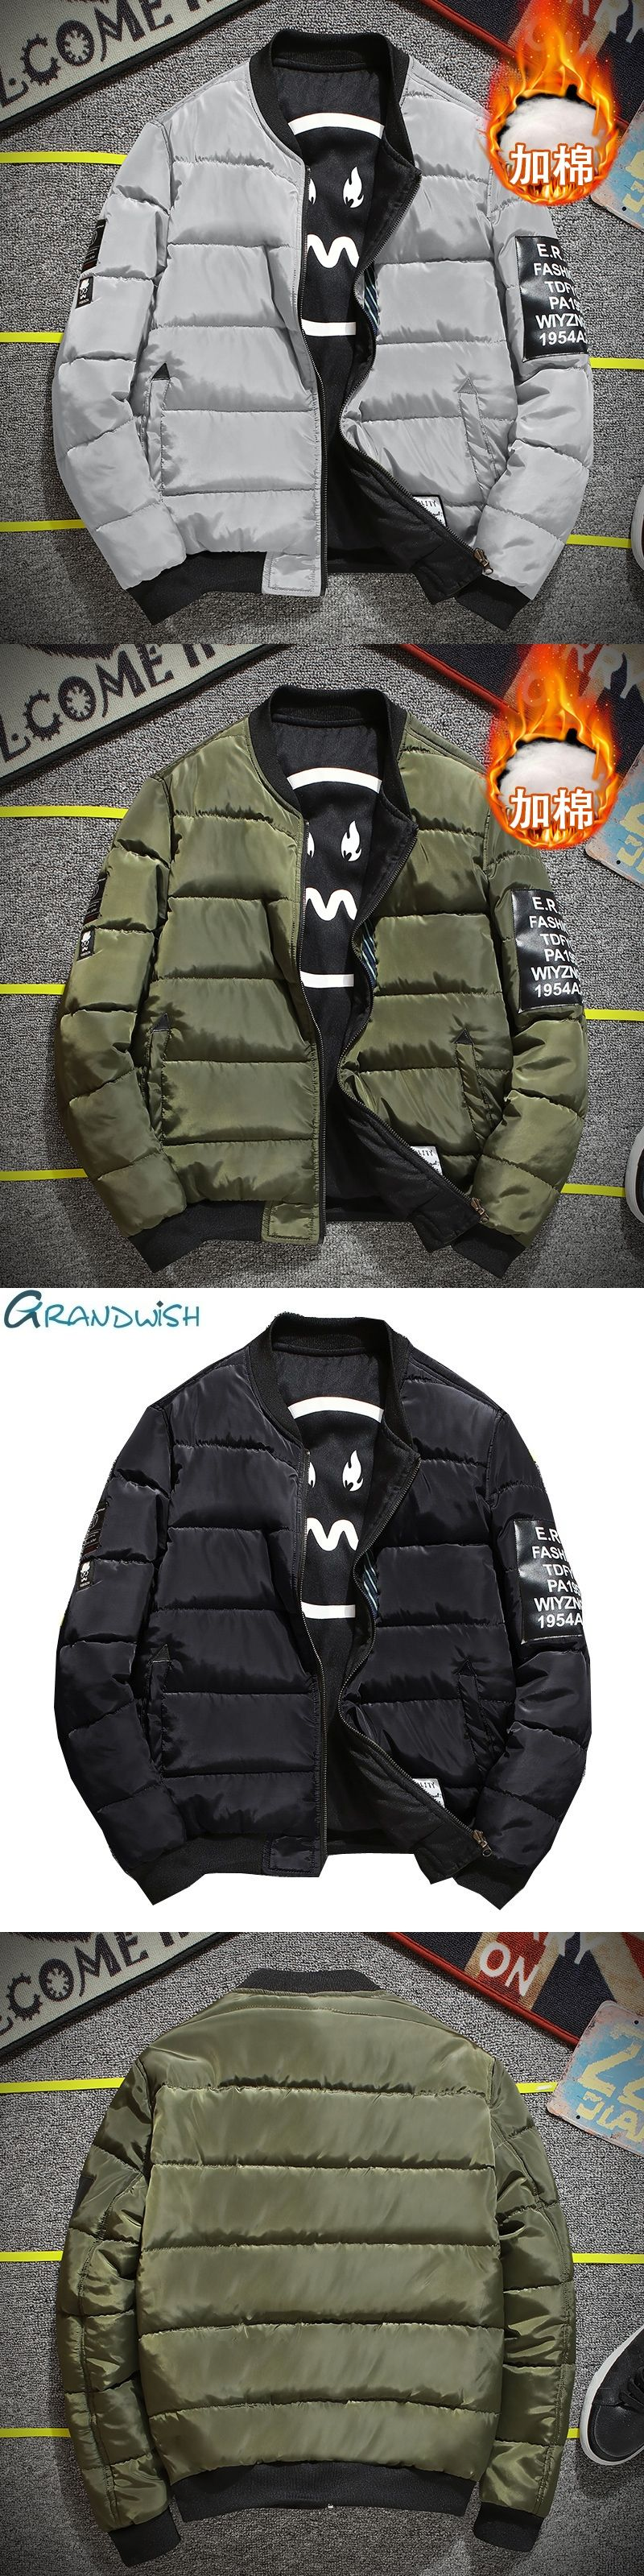 Mens quilted jacket size 4xl